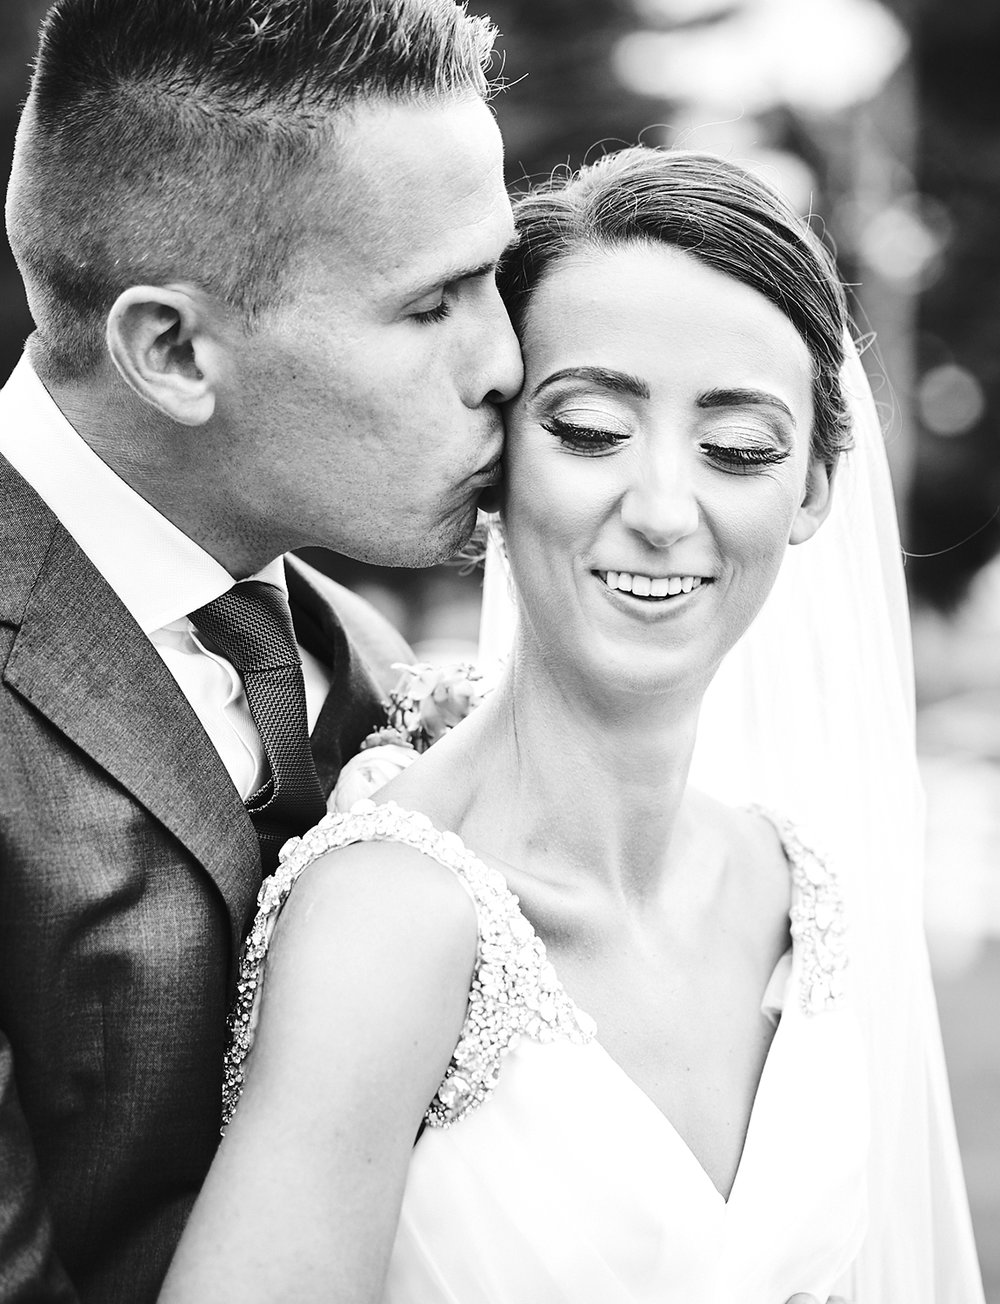 180819_TheRylandInnWeddingPhotography_TheRylandInnWeddingPhotographer_By_BrJohnsonWeddings_0062.jpg